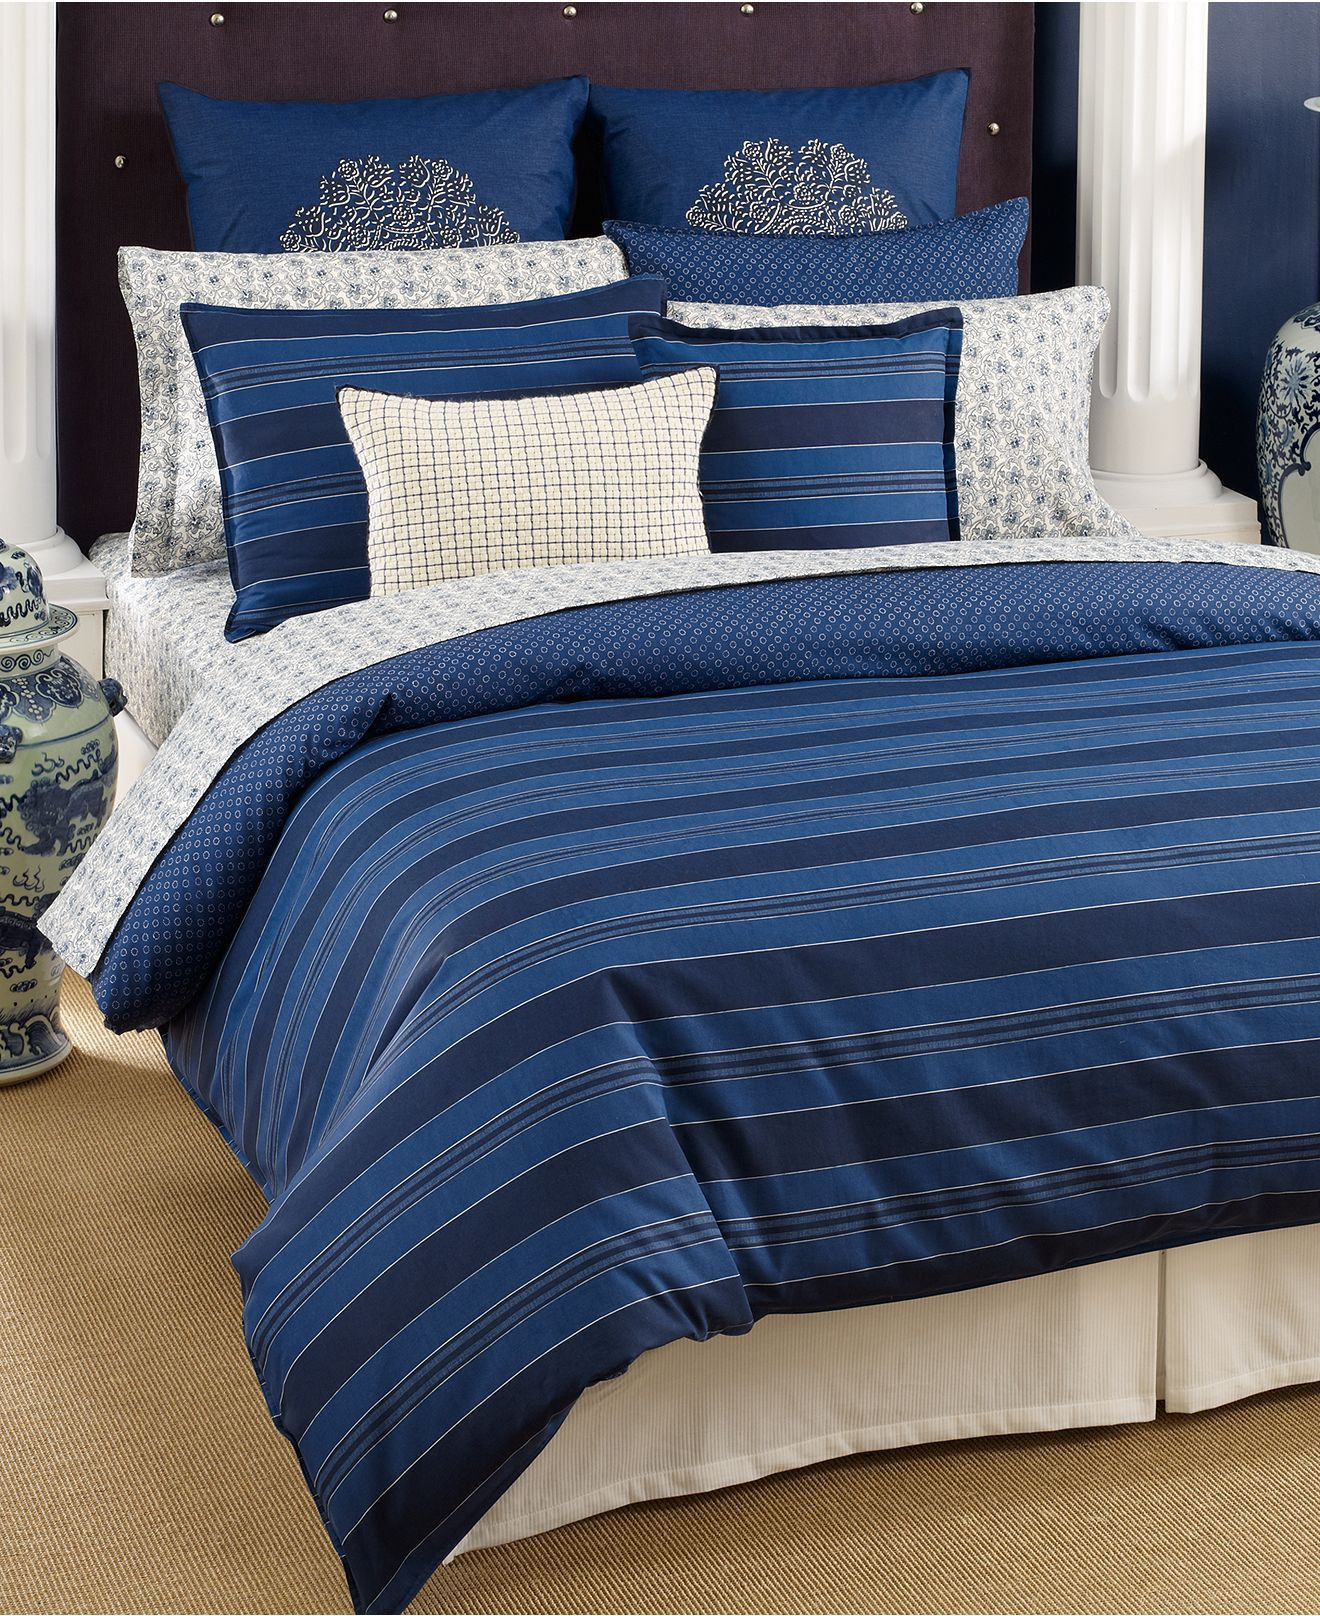 Tommy Hilfiger Bedding Westerly Stripe forter and Duvet Cover